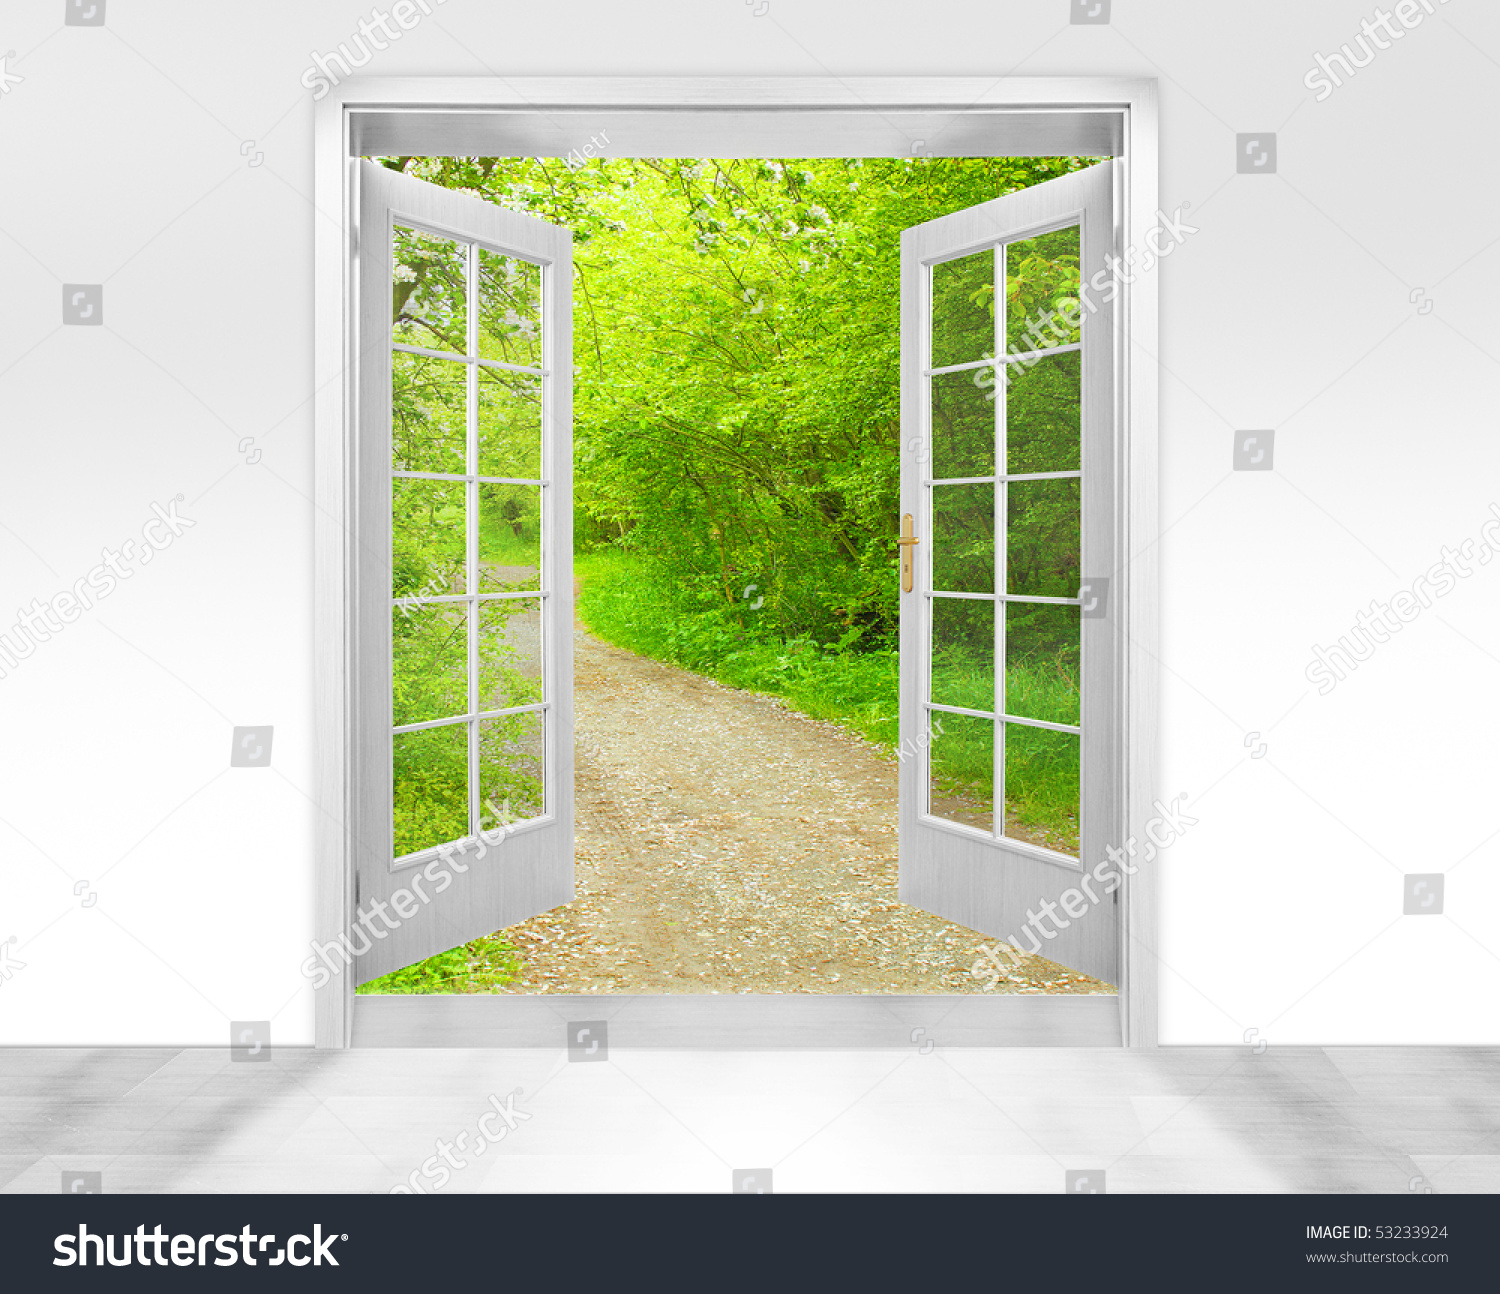 Opened door to early morning in green garden - conceptual image - environmental business metaphor. & Opened Door Early Morning Green Garden Stock Photo 53233924 ... Pezcame.Com